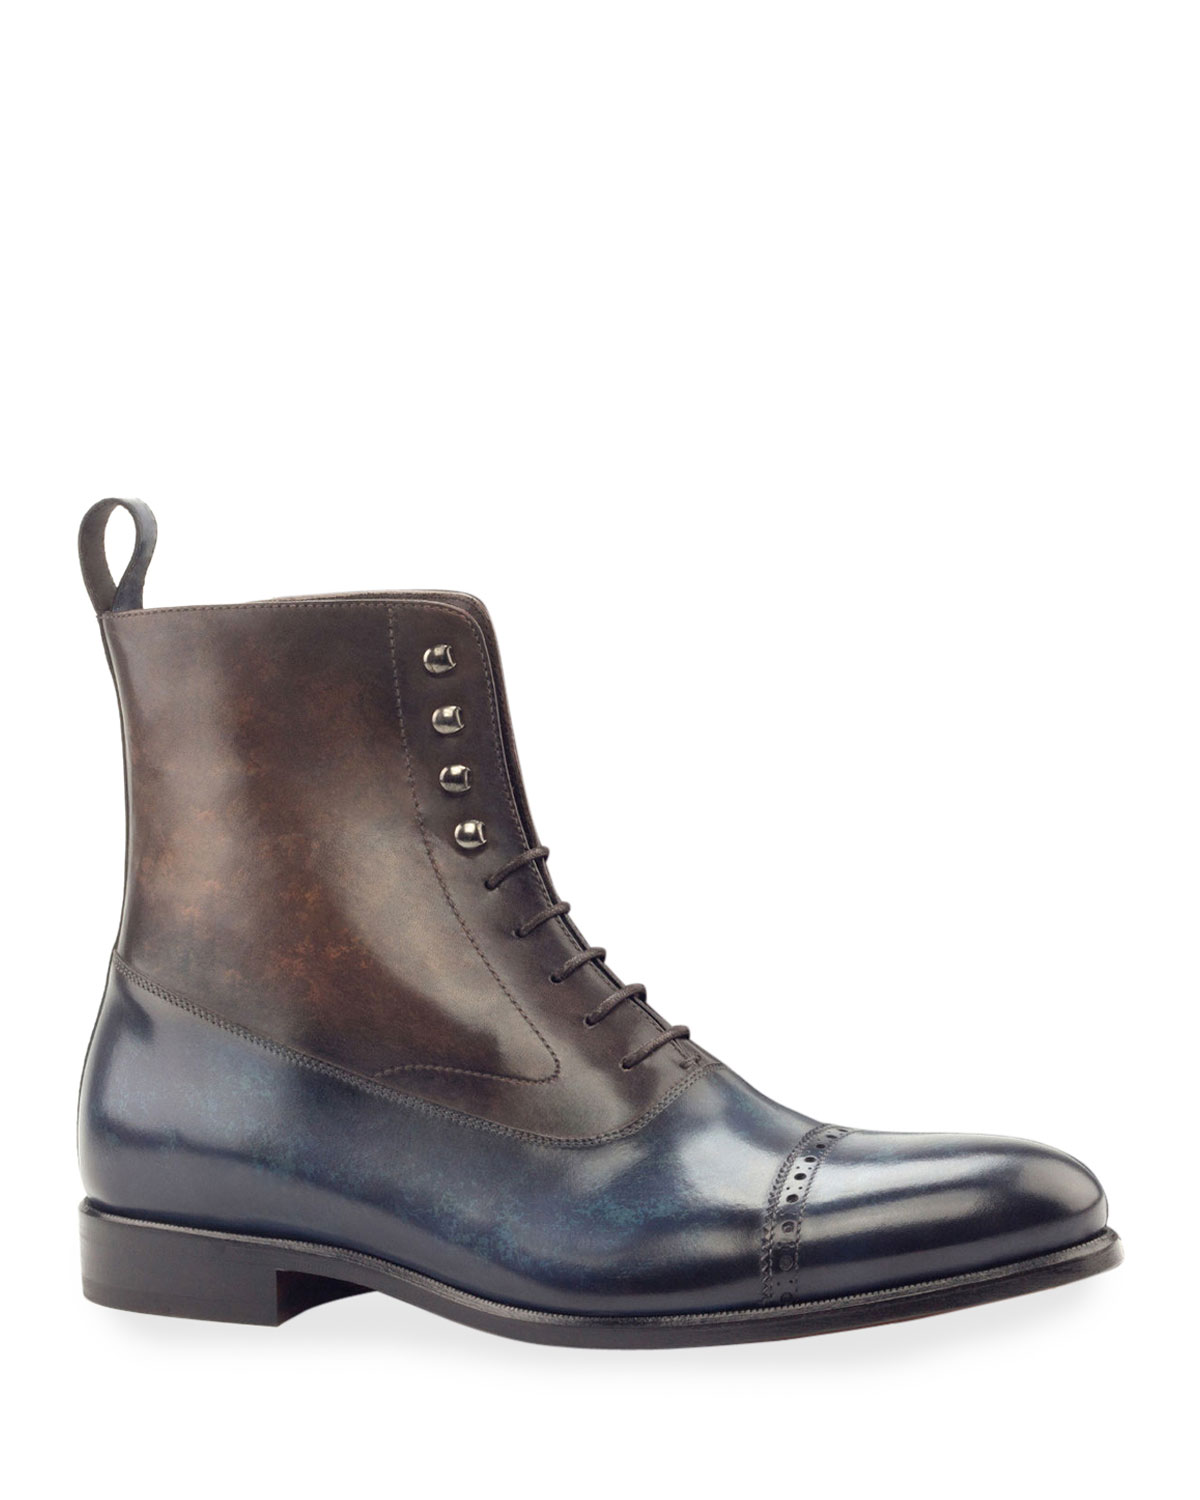 Men's Edge Two-Tone Patina Leather Balmoral Boots